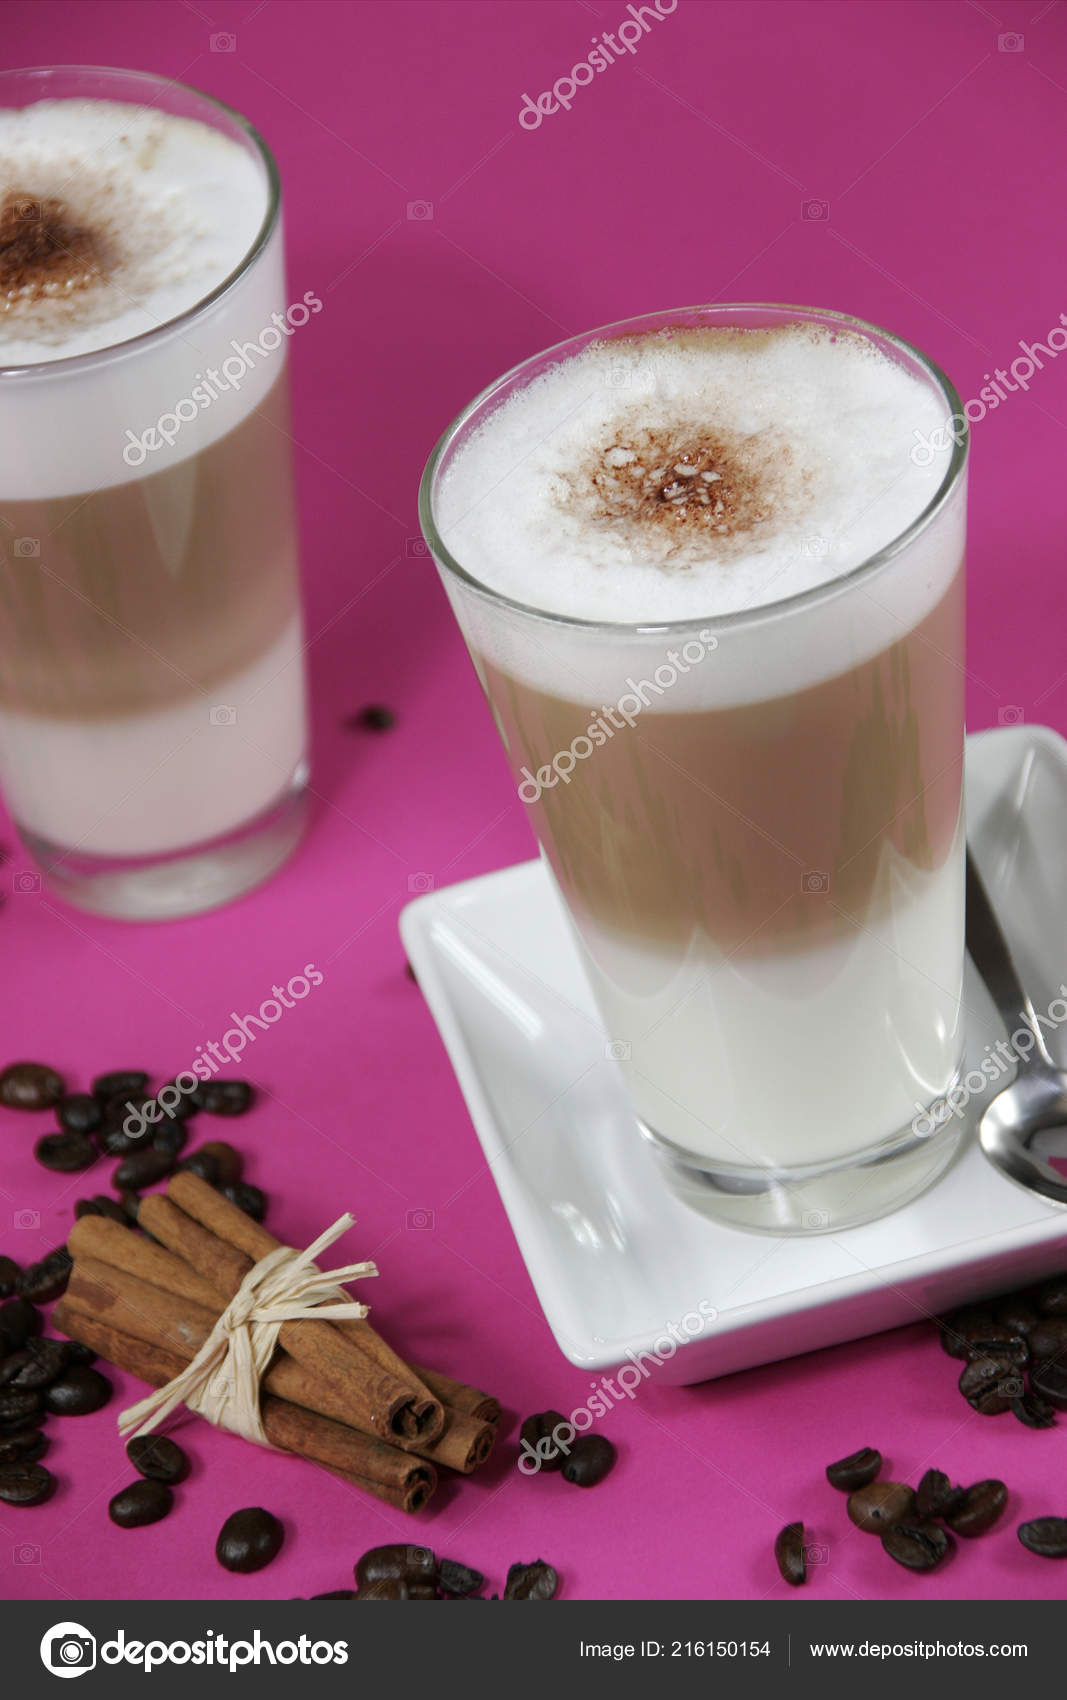 Caffe Latte Glasses Caffe Latte Coffee Beans Cinnamon Sticks Bright Pink